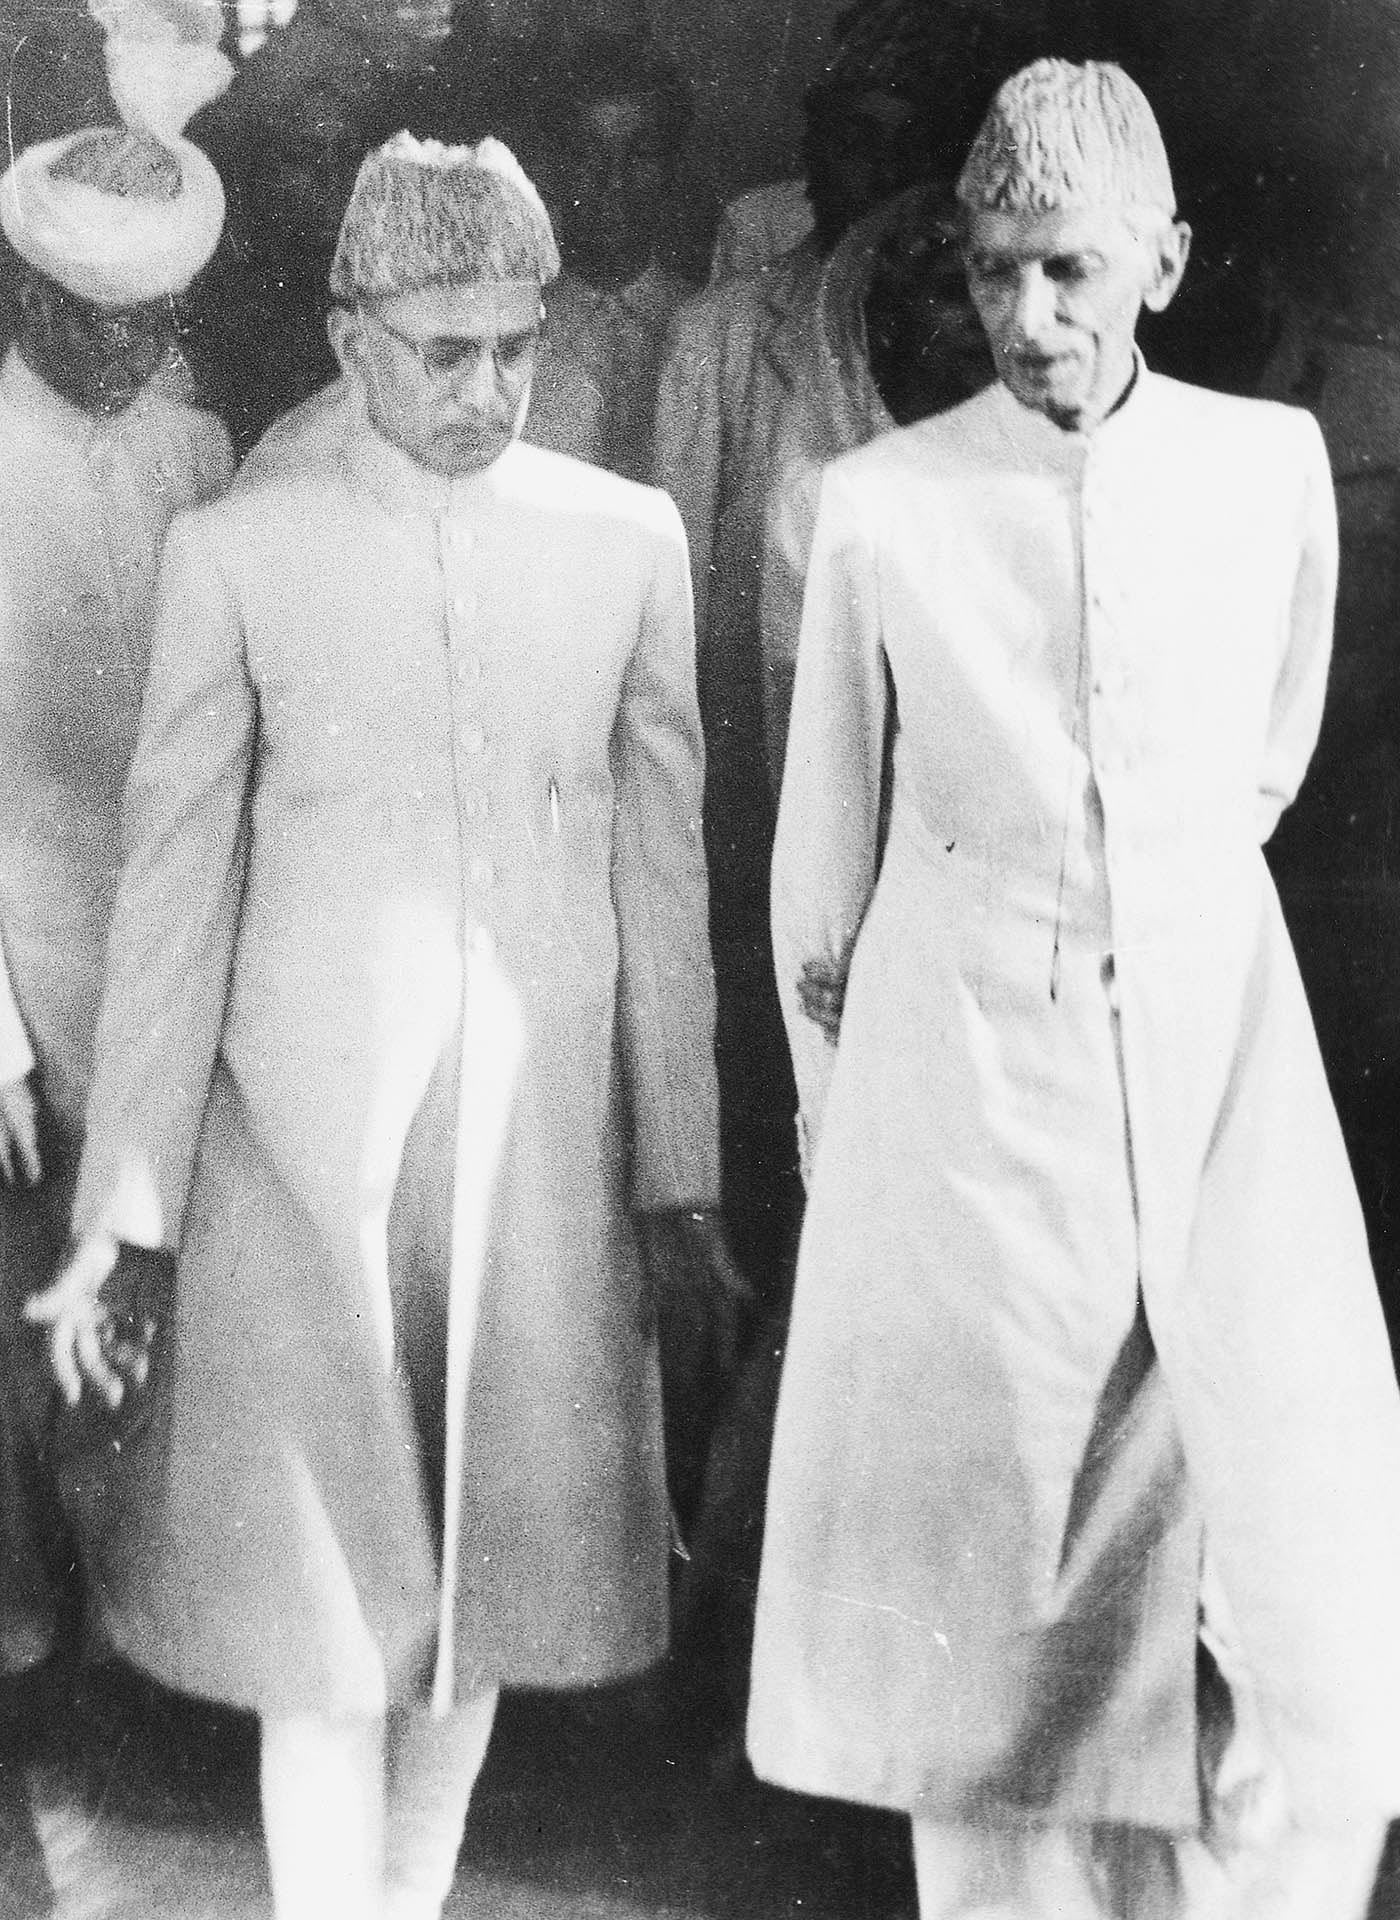 Quaid-i-Azam Mohammad Ali Jinnah inaugurates the State Bank of Pakistan in Karachi on July 1, 1948. He is accompanied by Zahid Hussain, the first Governor of the State Bank. — Courtesy National Archives Islamabad